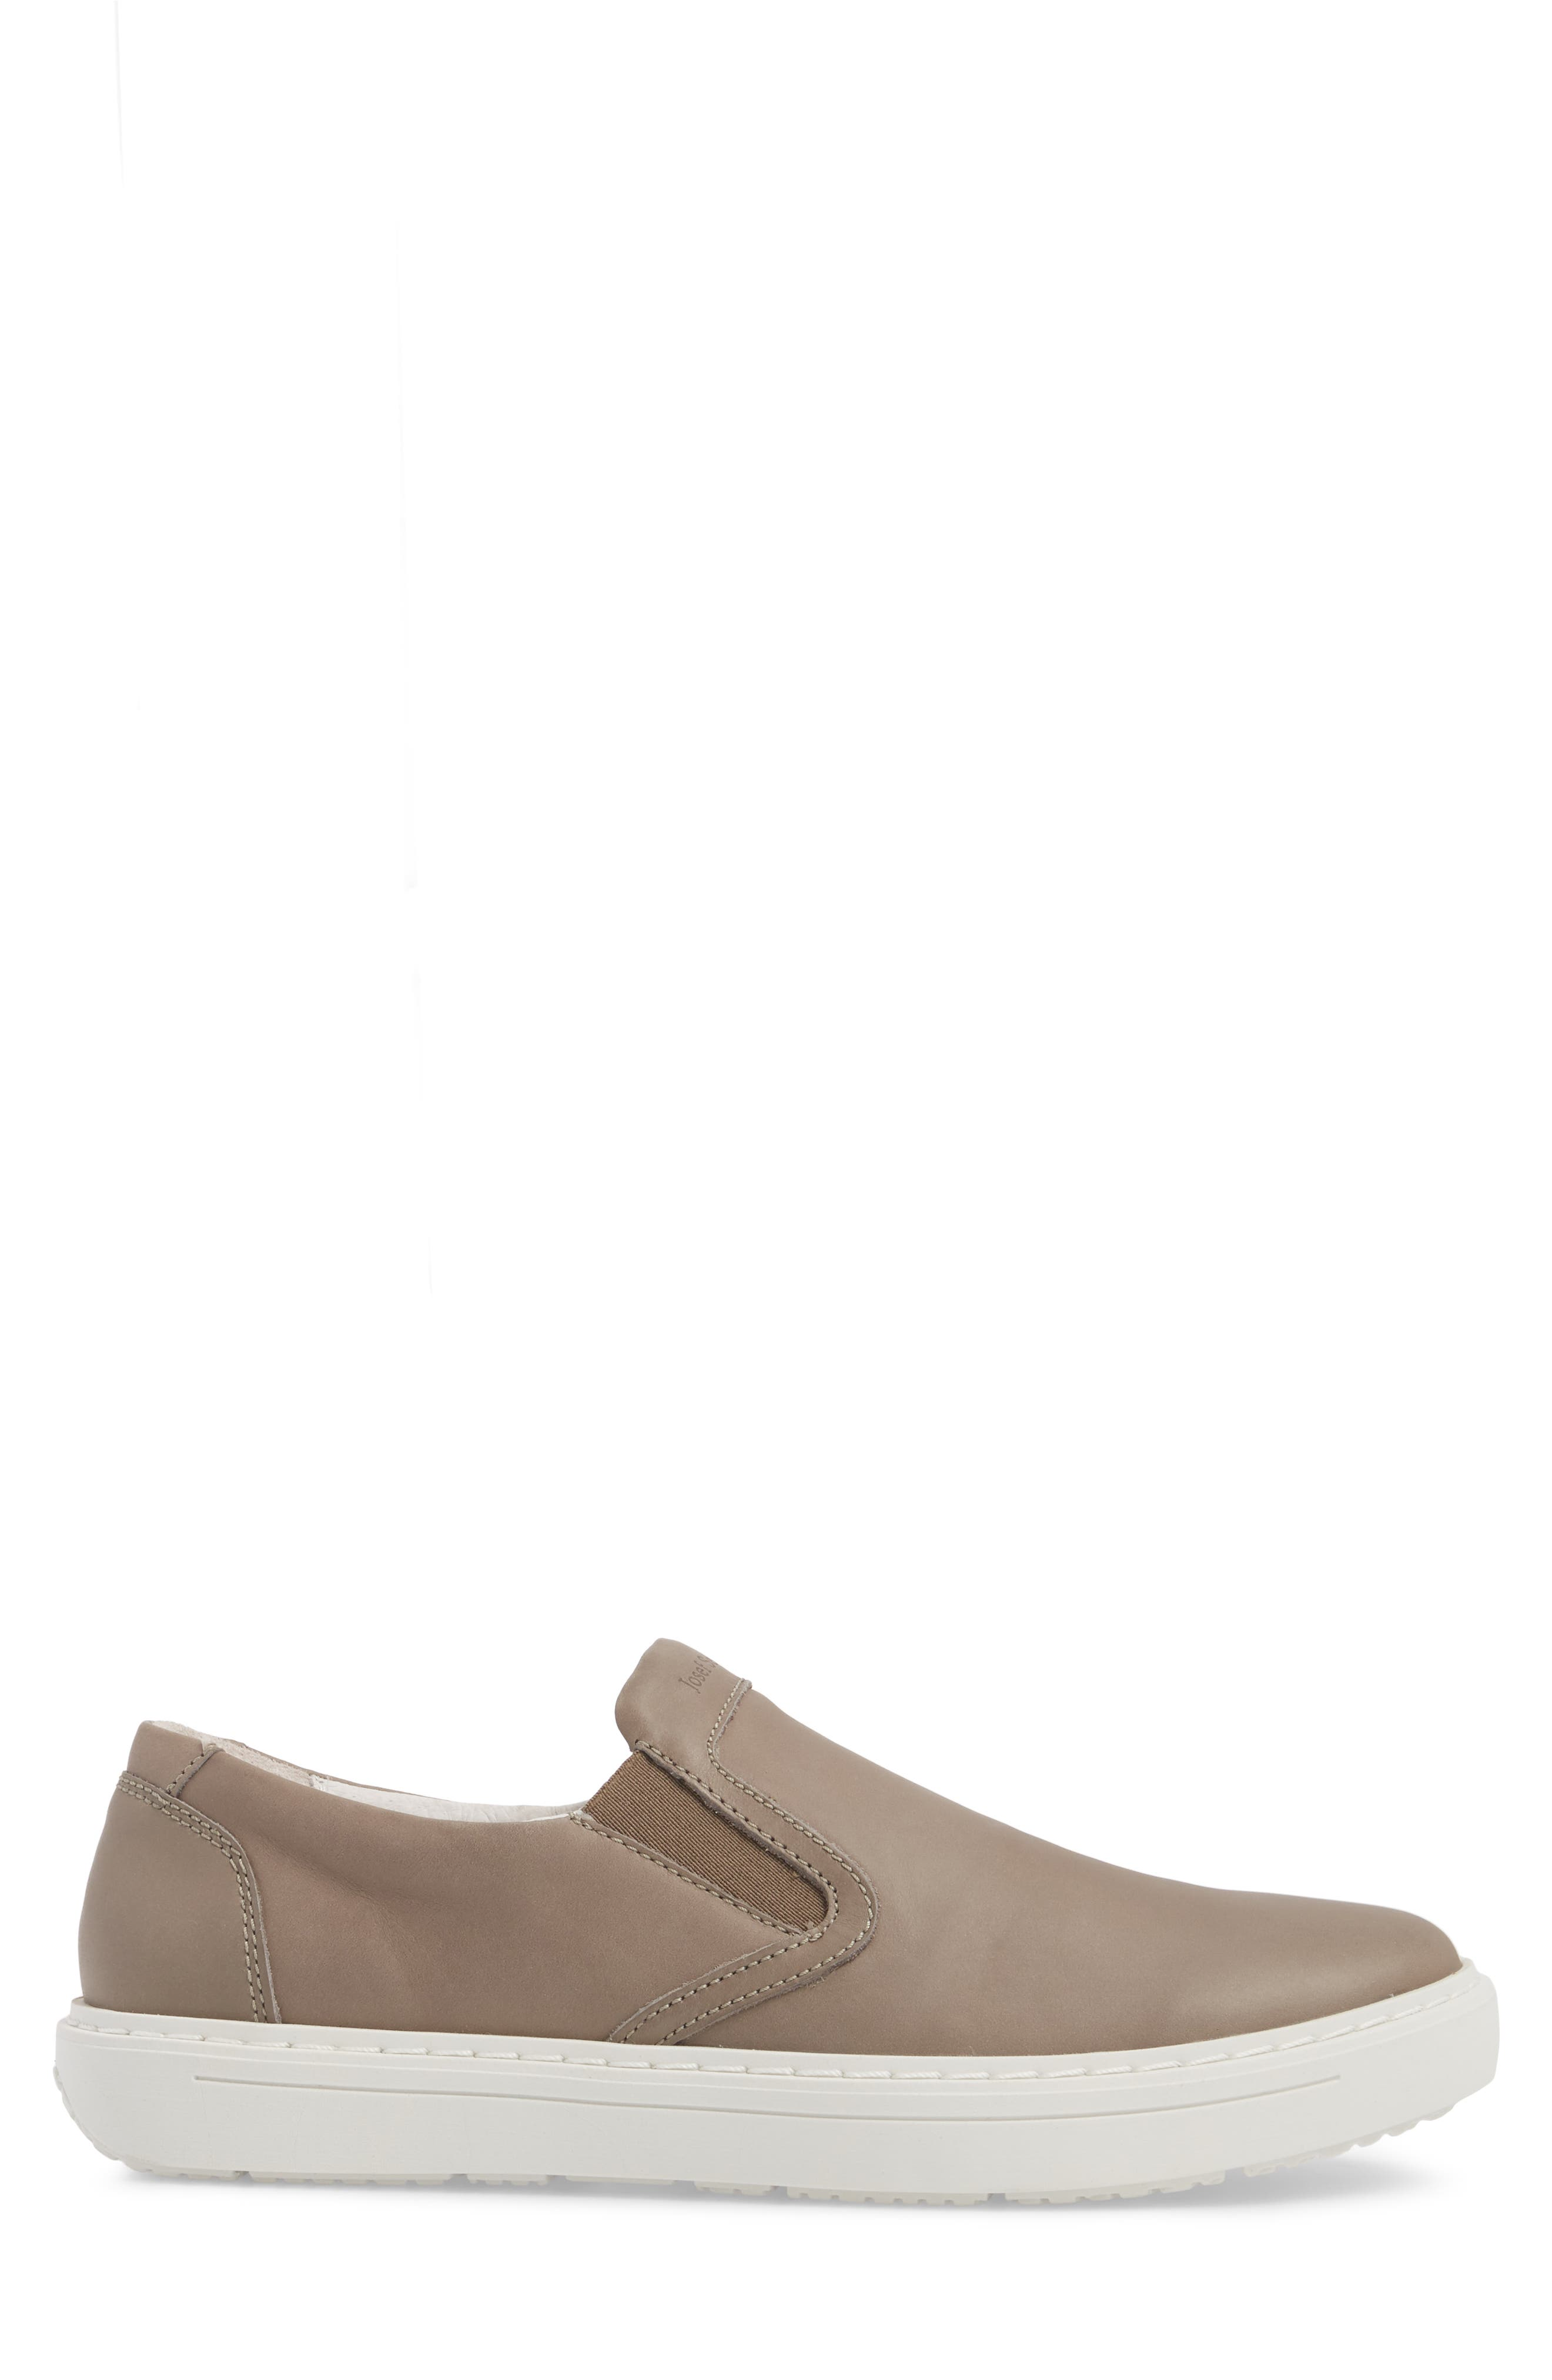 Quentin 15 Slip-On Sneaker,                             Alternate thumbnail 3, color,                             GRAY LEATHER